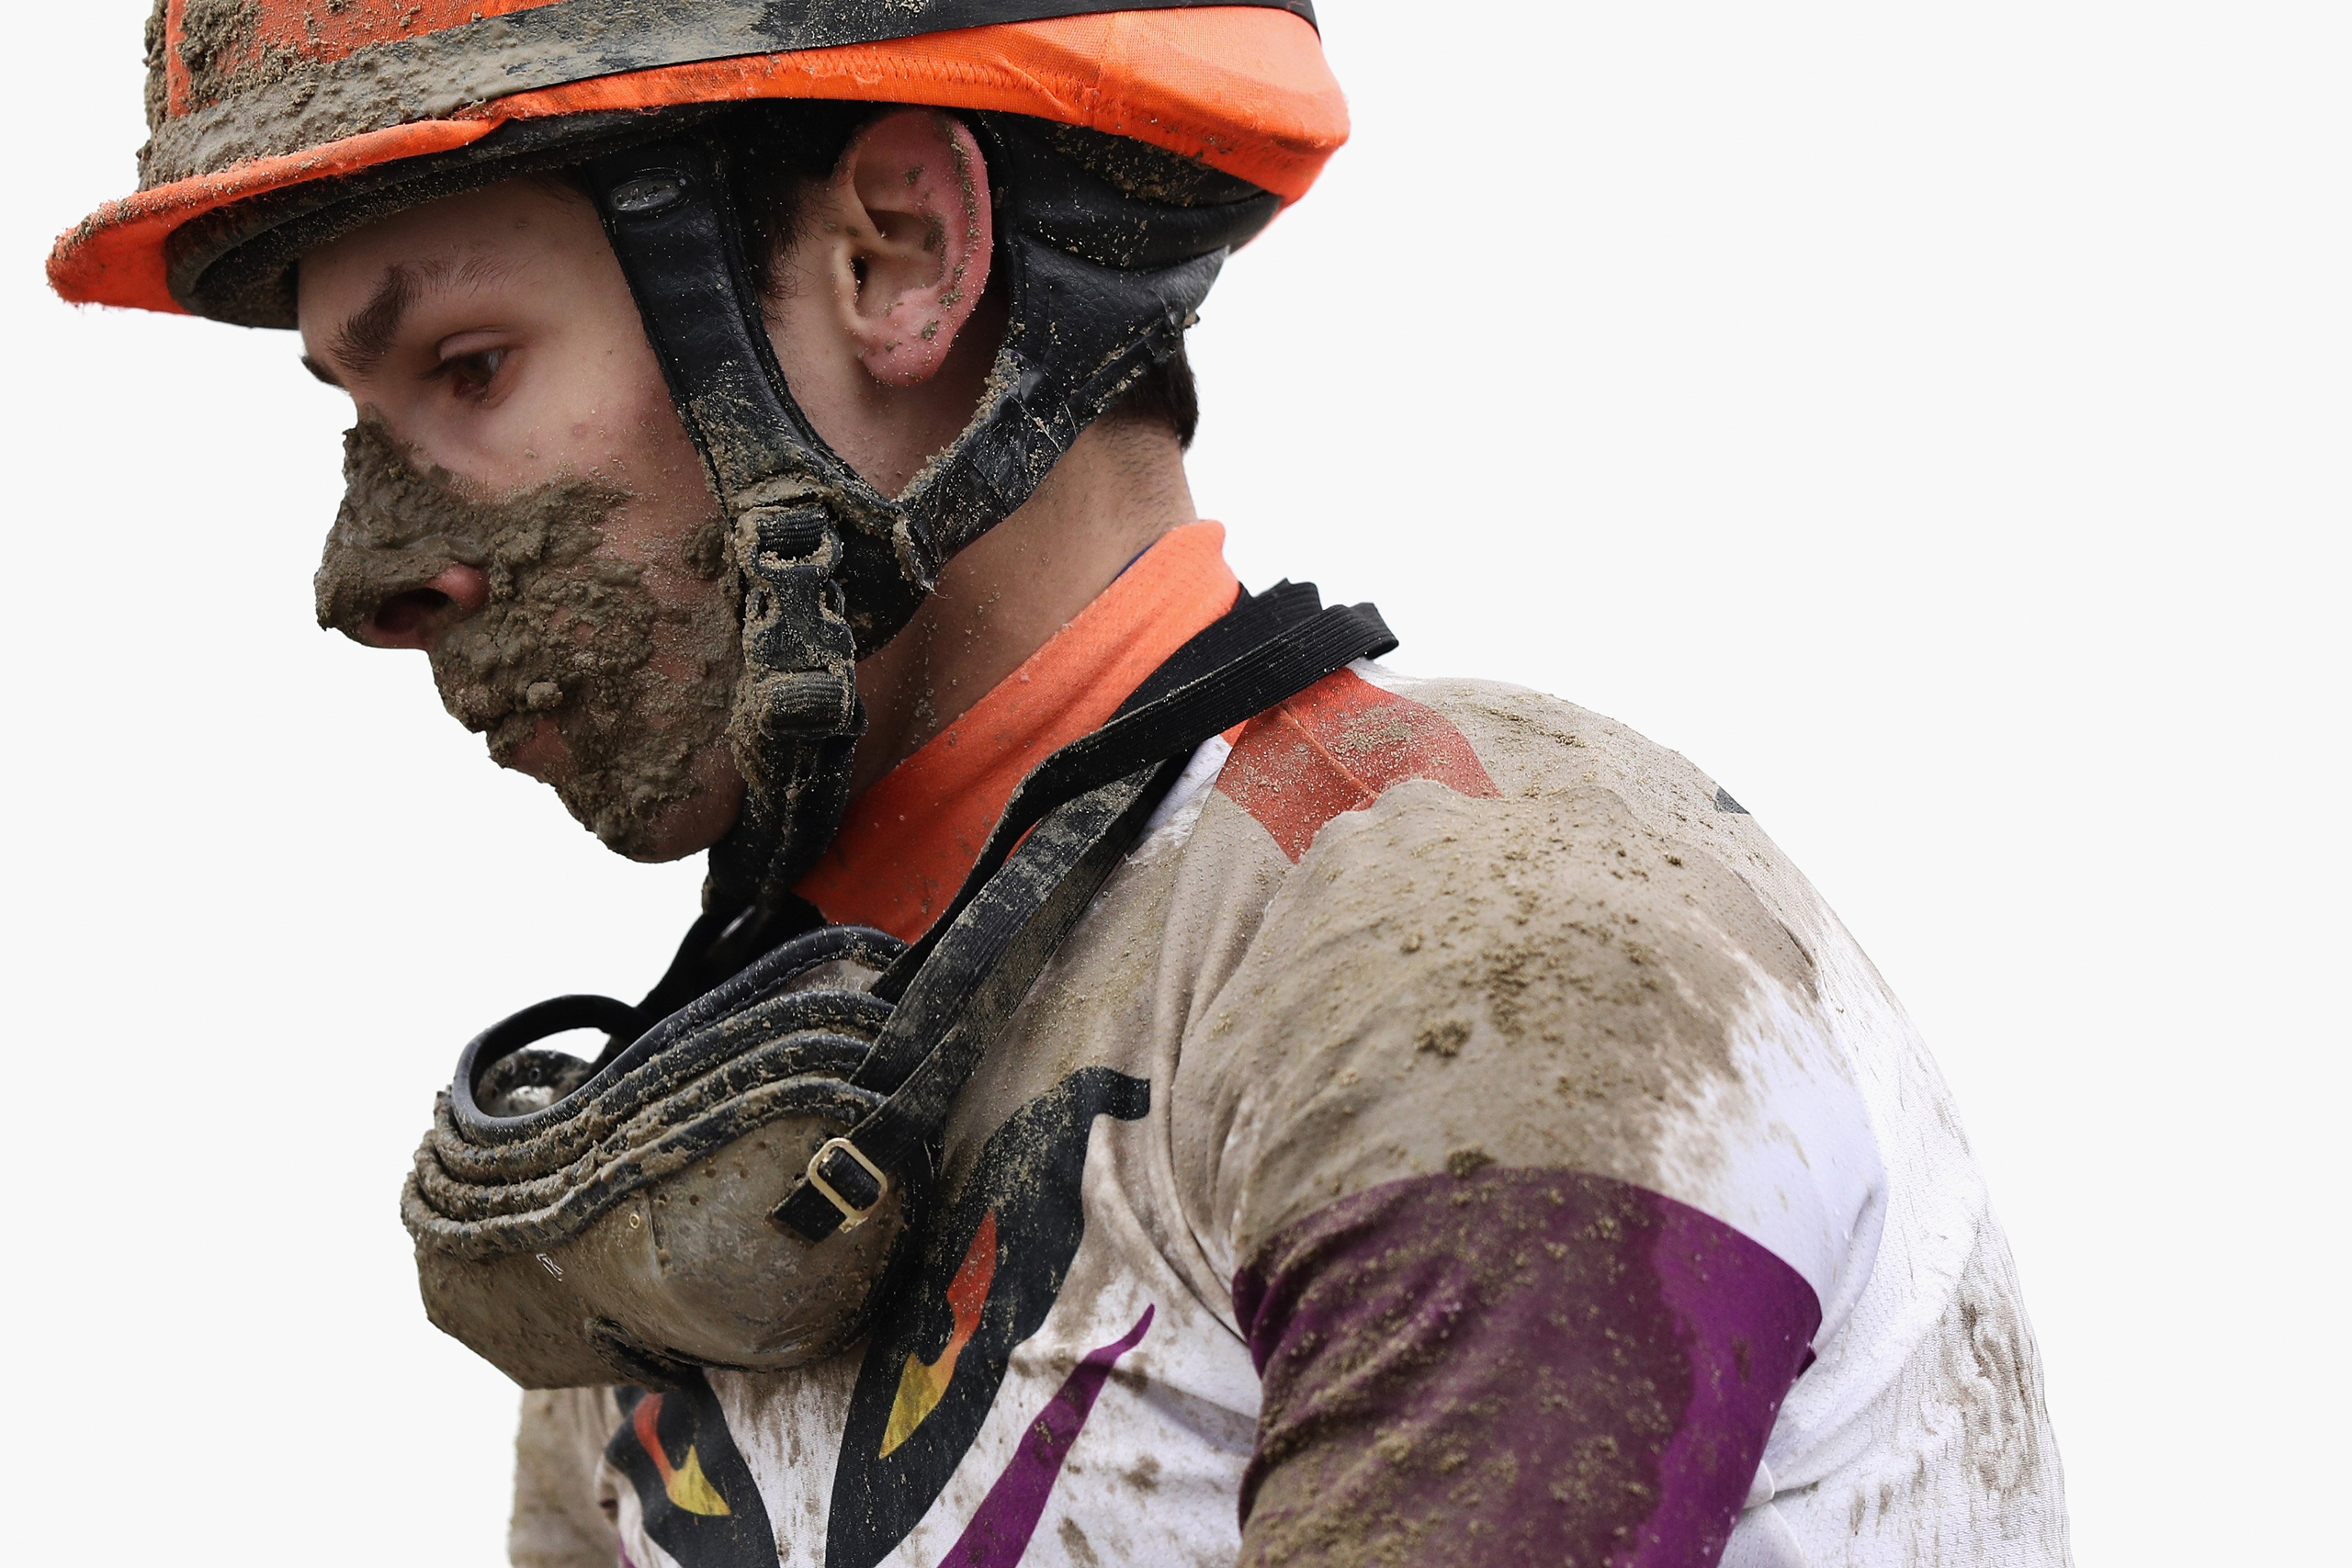 A jockey looks on after racing in a race prior to the 141st Preakness Stakes horse race at Pimlico Race Course in Baltimore, Md., on May 21, 2016.